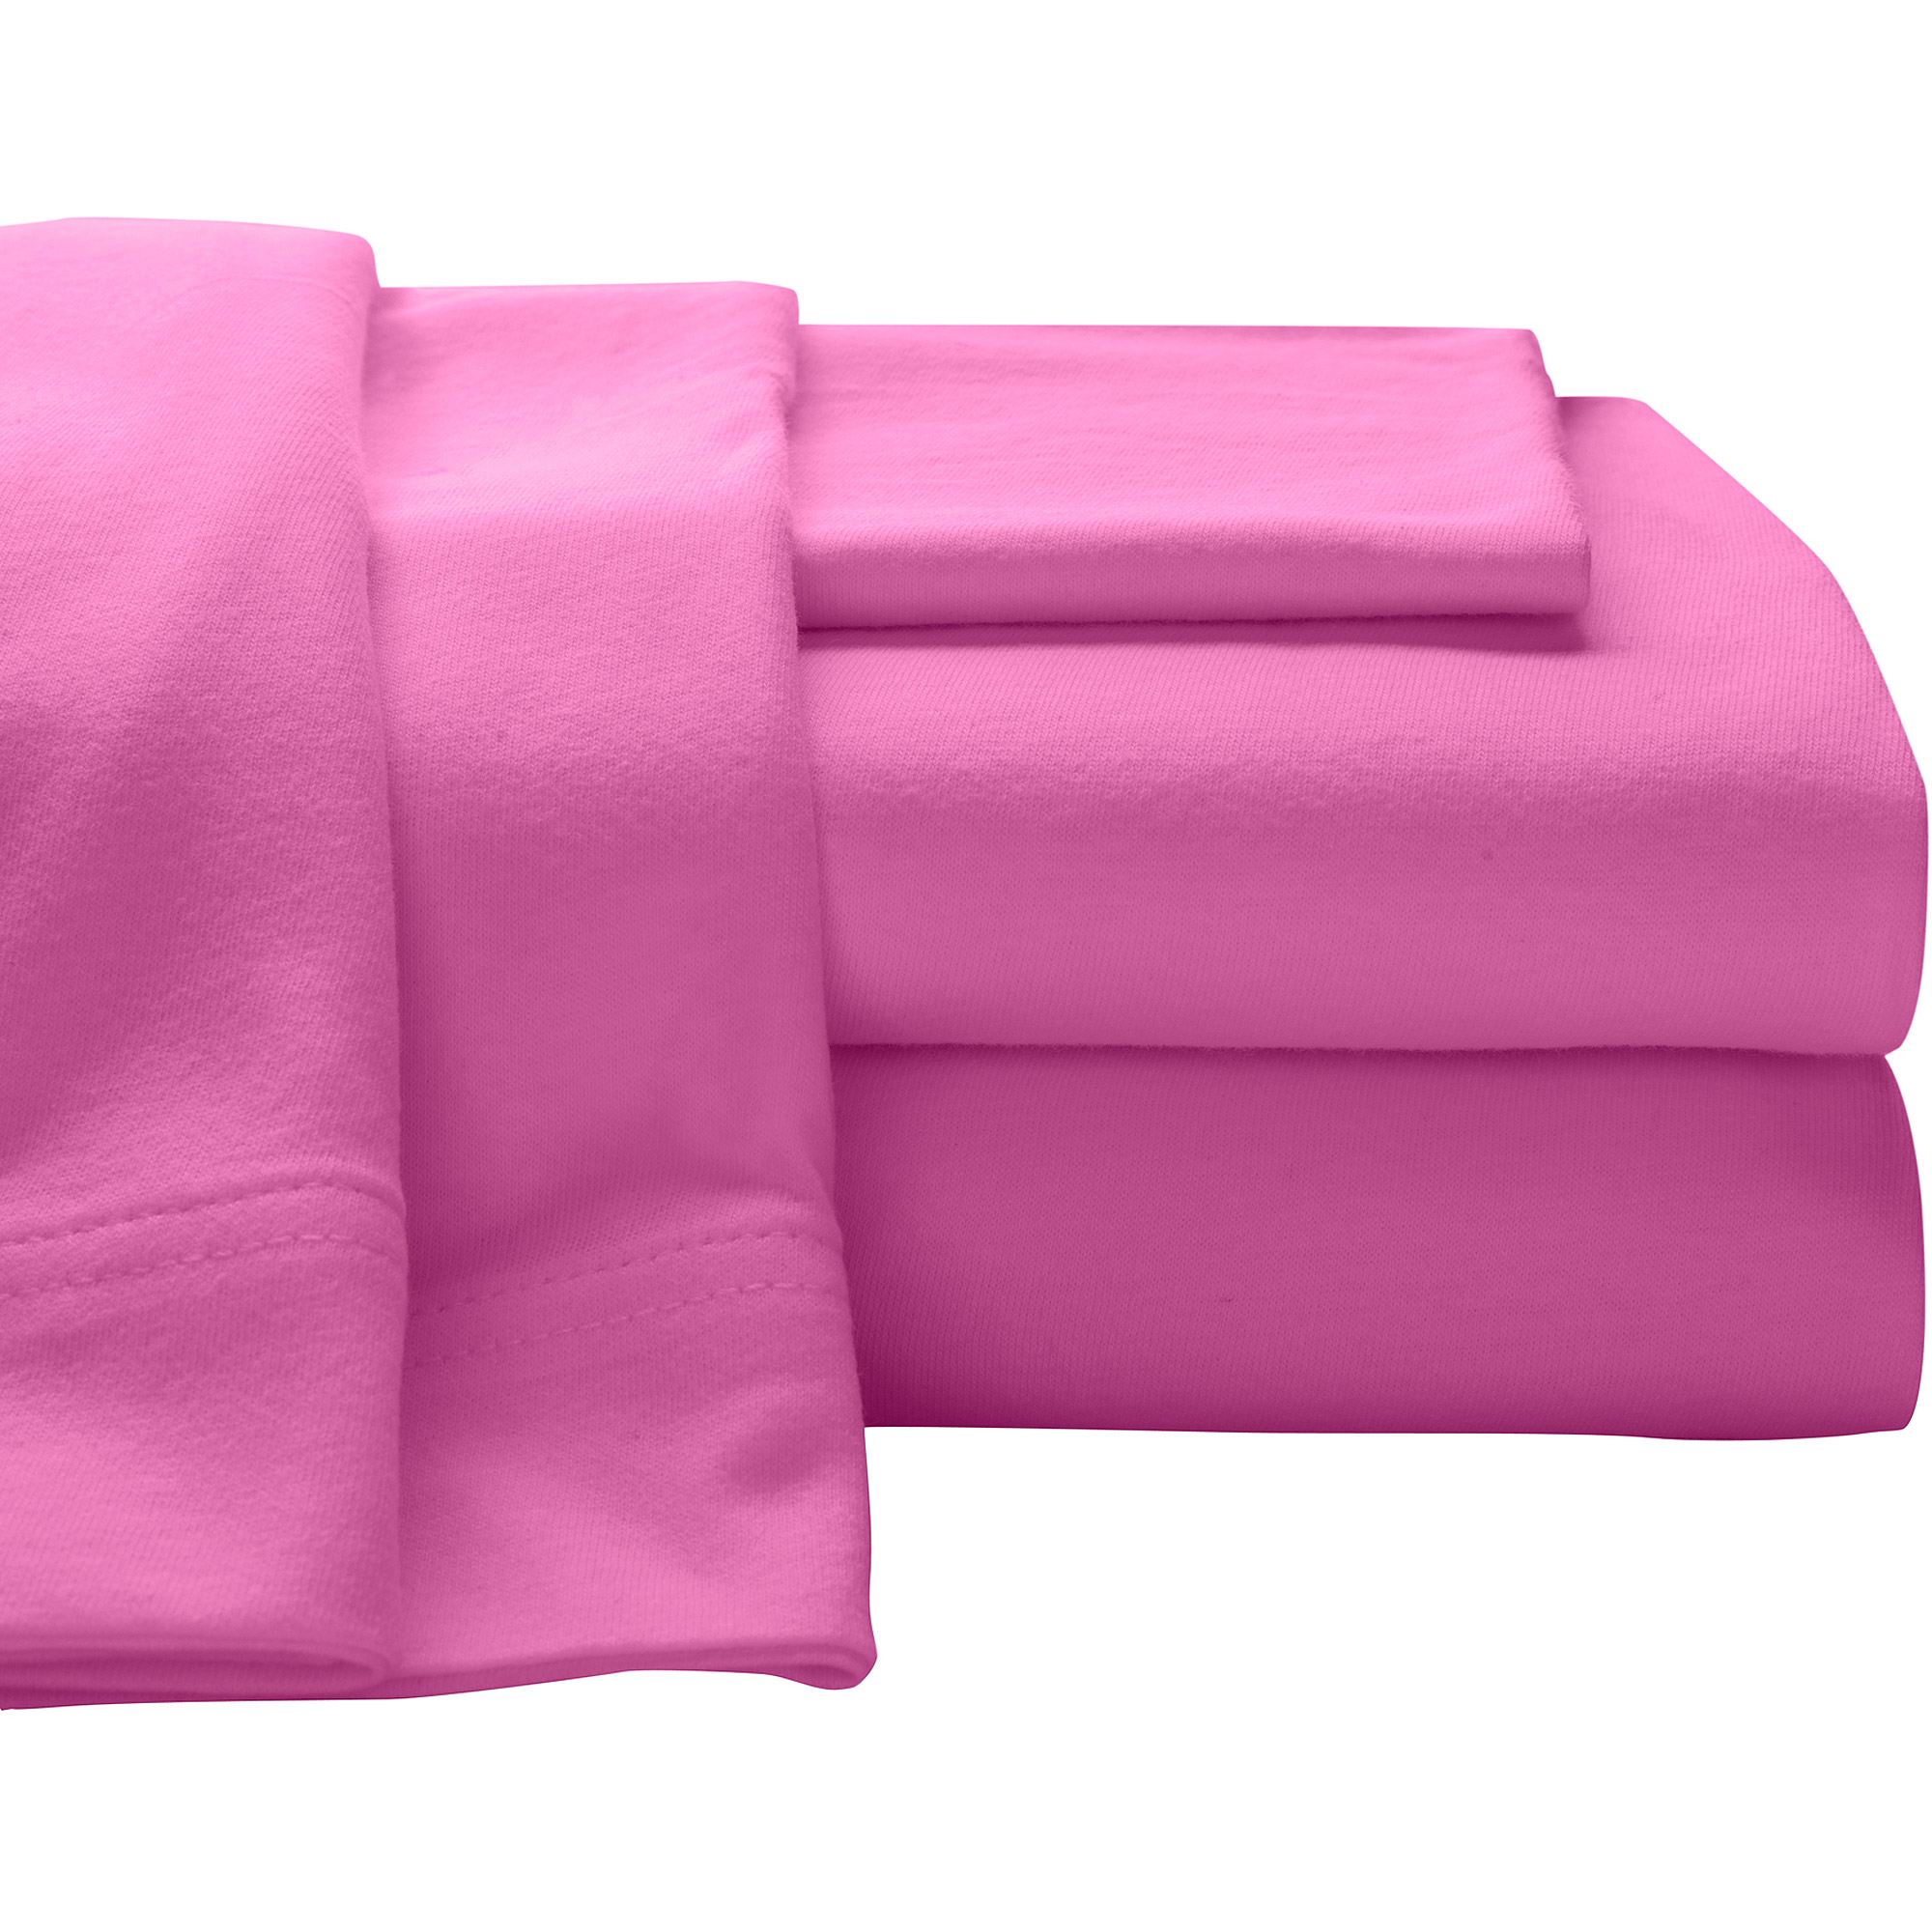 super soft 100 cotton jersey sheet set walmart com